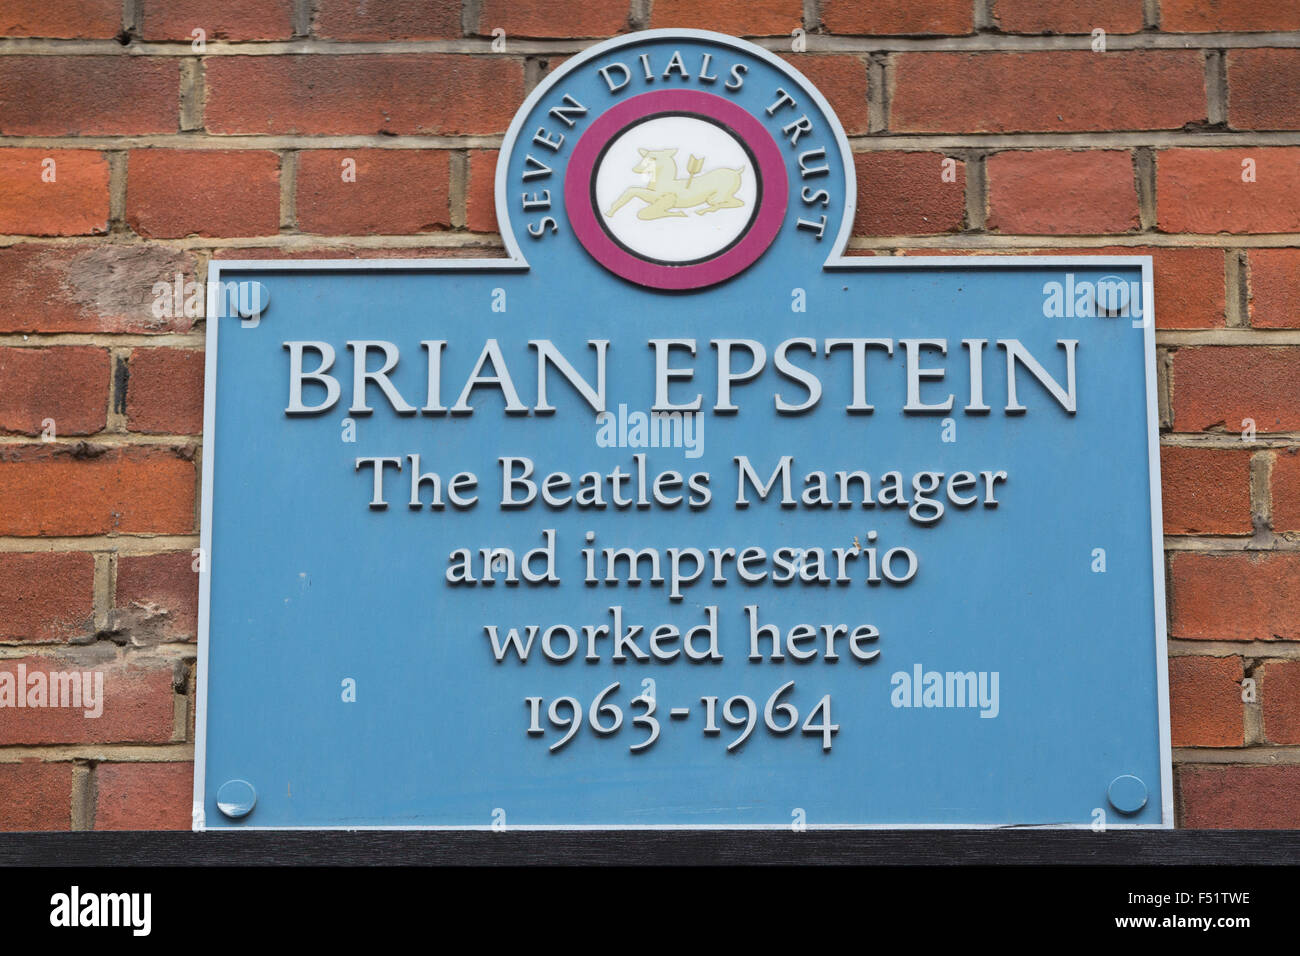 Brian Epstein honoured with Blue Plaque at 13 Monmouth Street, Seven Dials, Covent Garden, London, UK - Stock Image